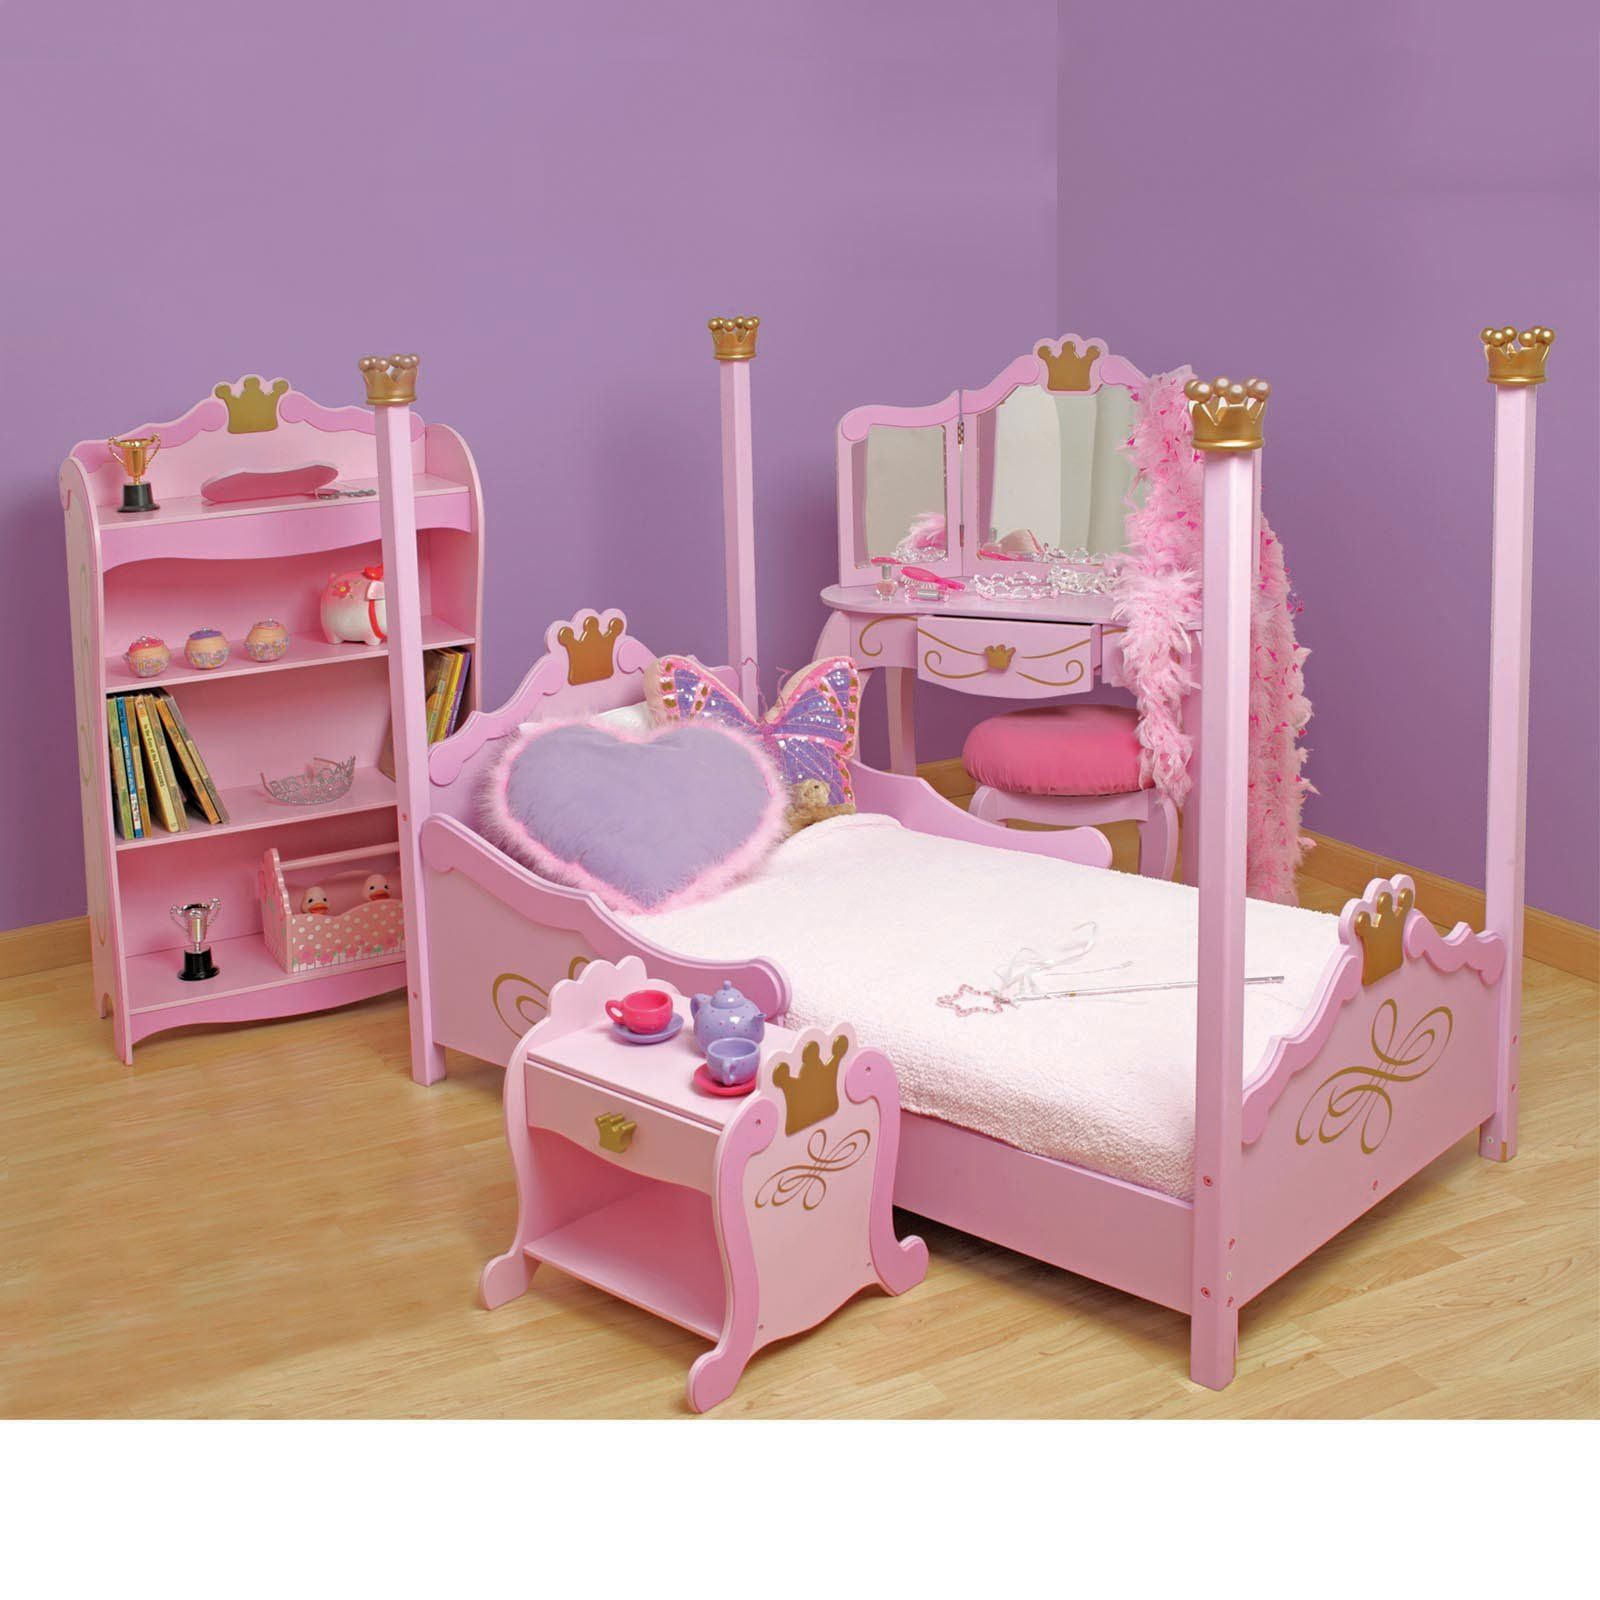 Girl toddler bed furniture - Cute Toddler Beds For Girls Http Decor Aitherslight Com